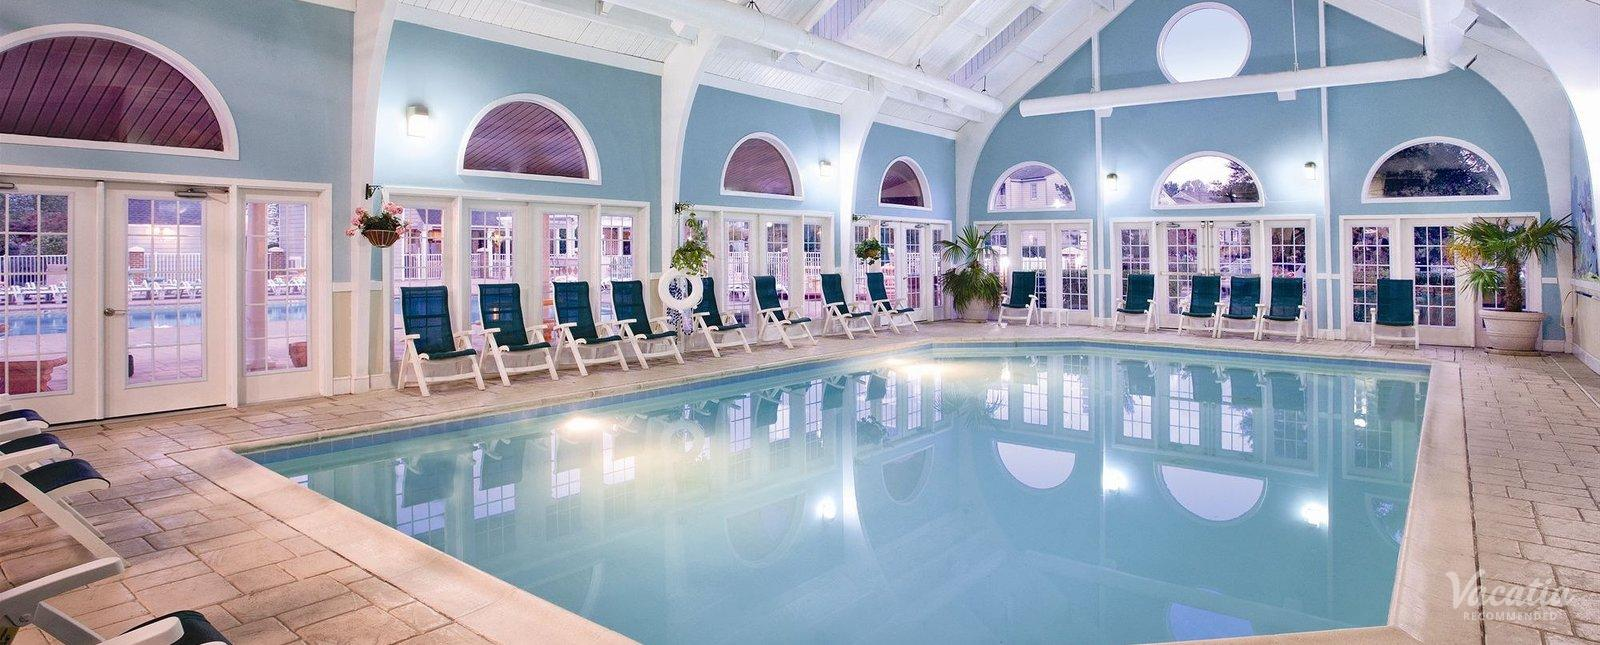 Wyndham Kingsgate Williamsburg Indoor Pool